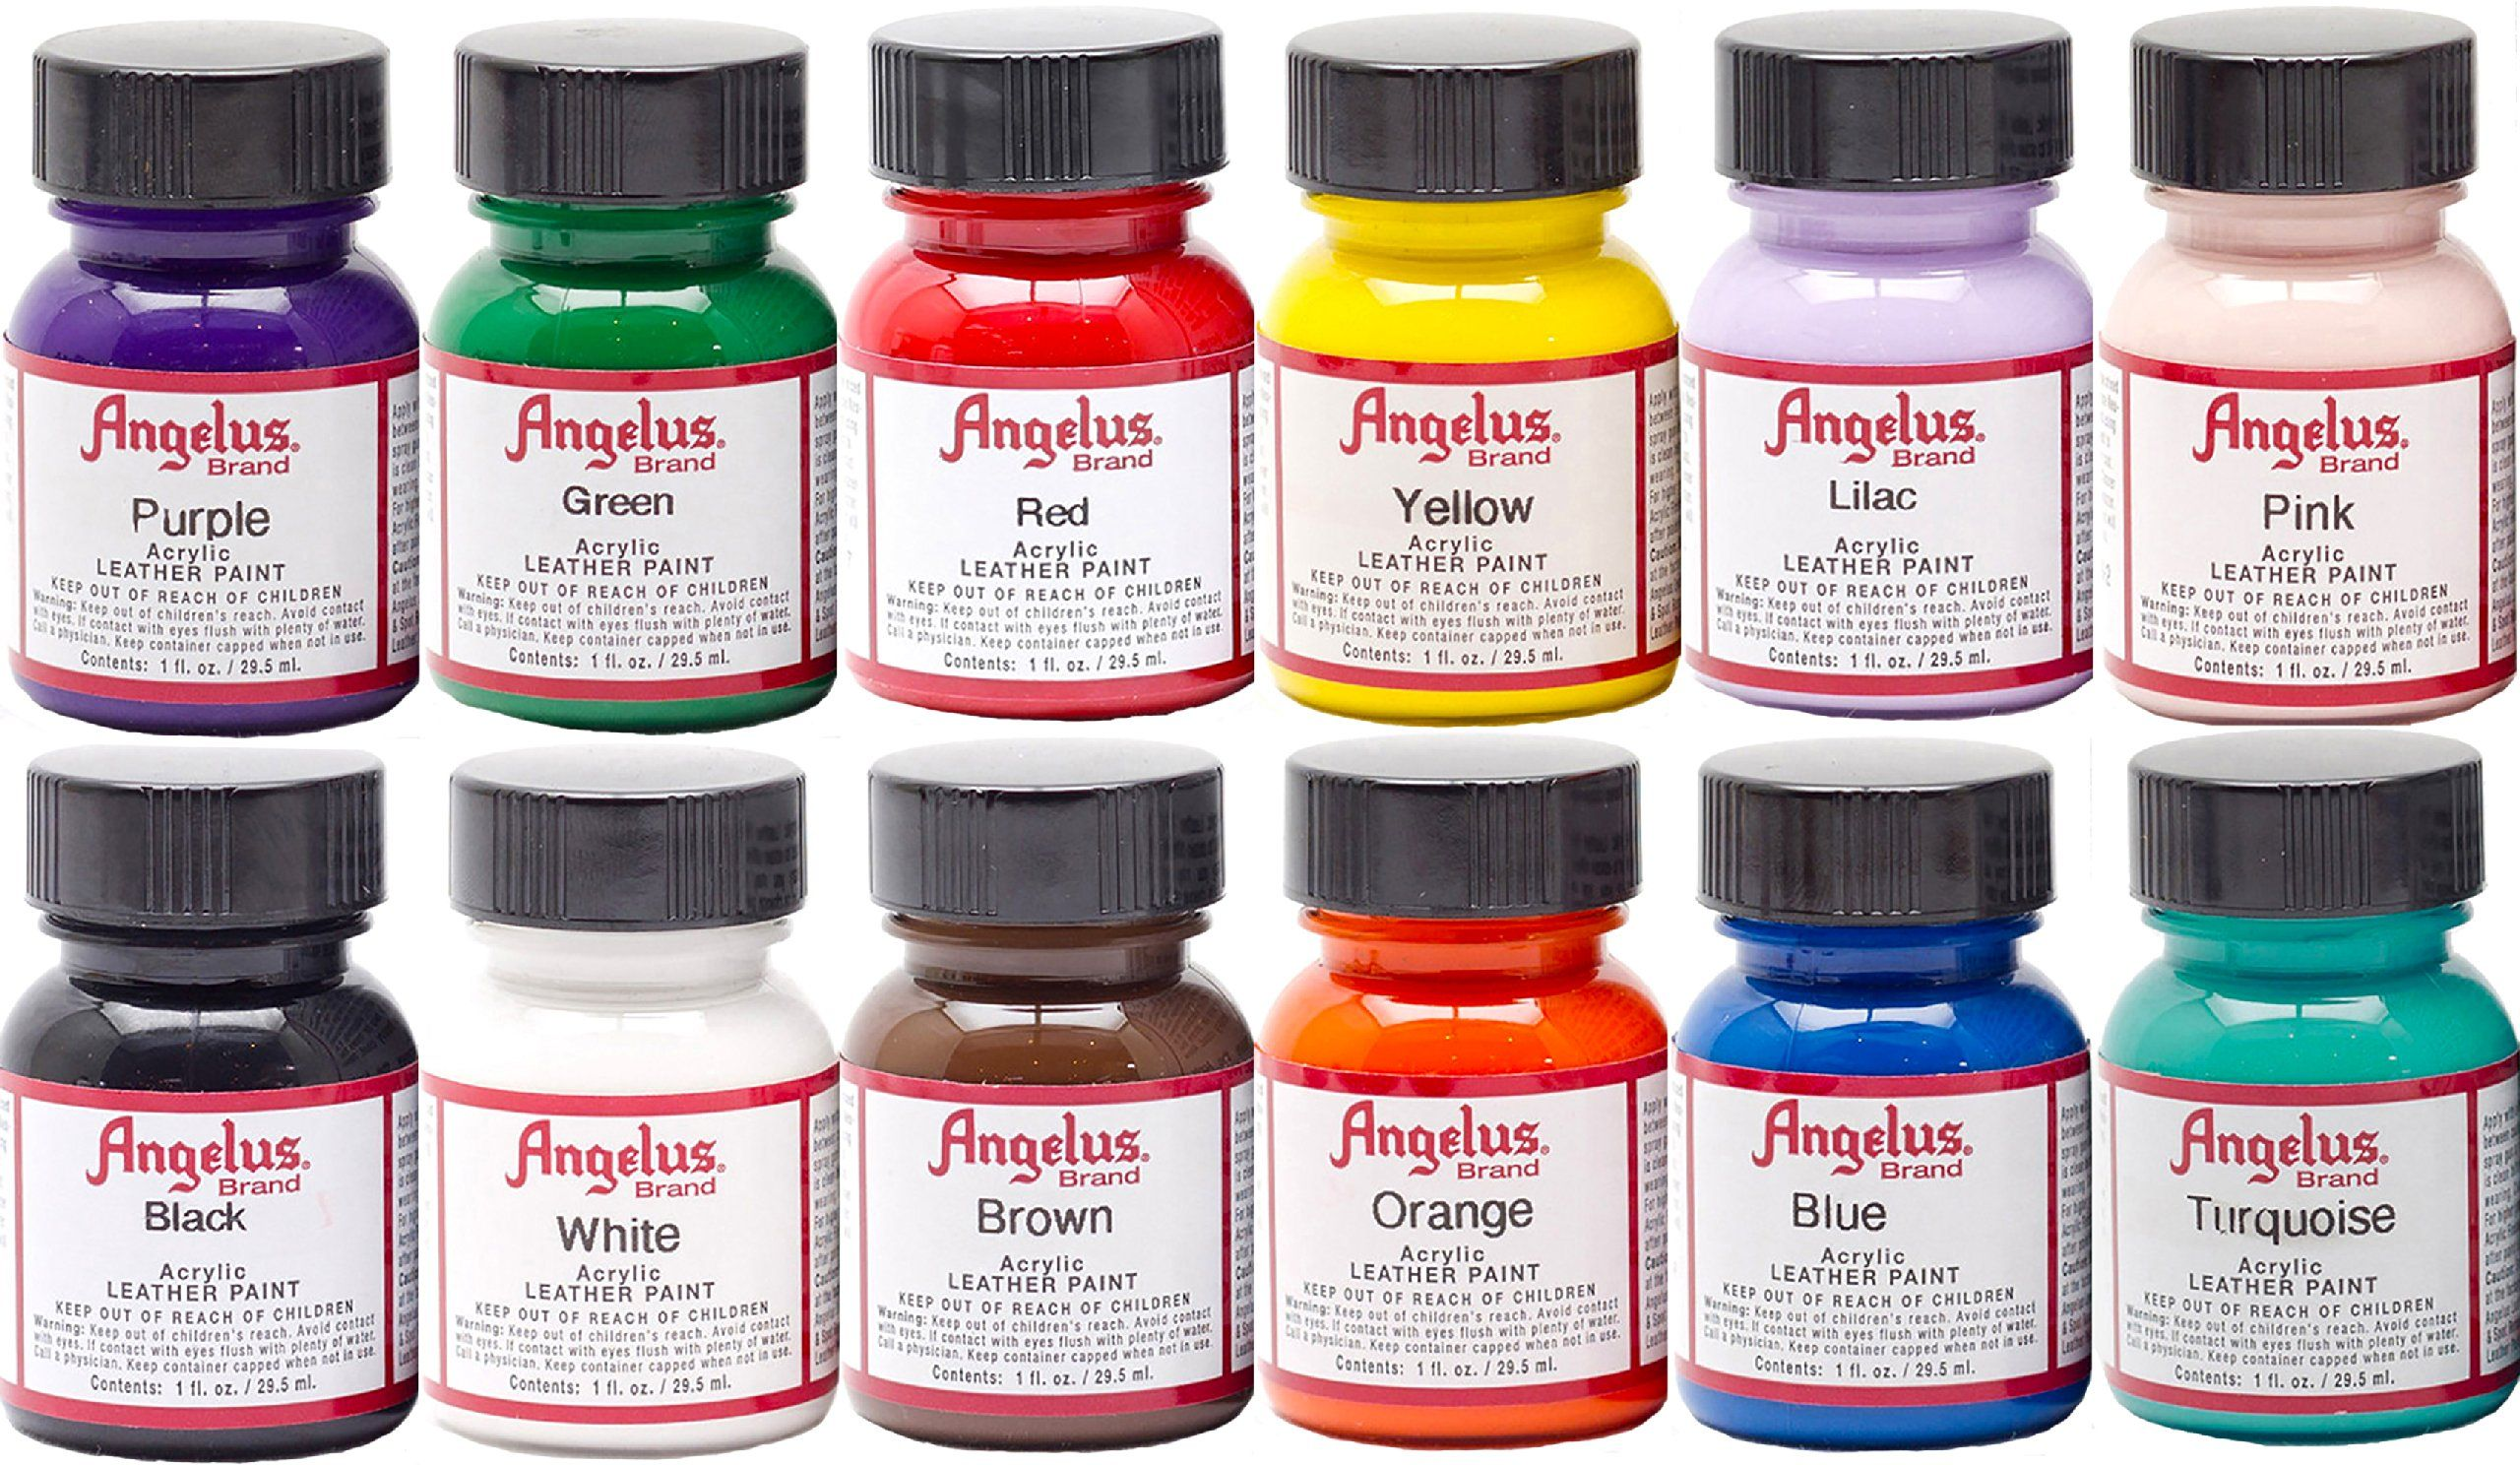 Angelus Leather Paints These Paints Are Formulated Specifically For Leather And Are Great For Customizing Painting Leather Leather Paint Leather Diy Crafts